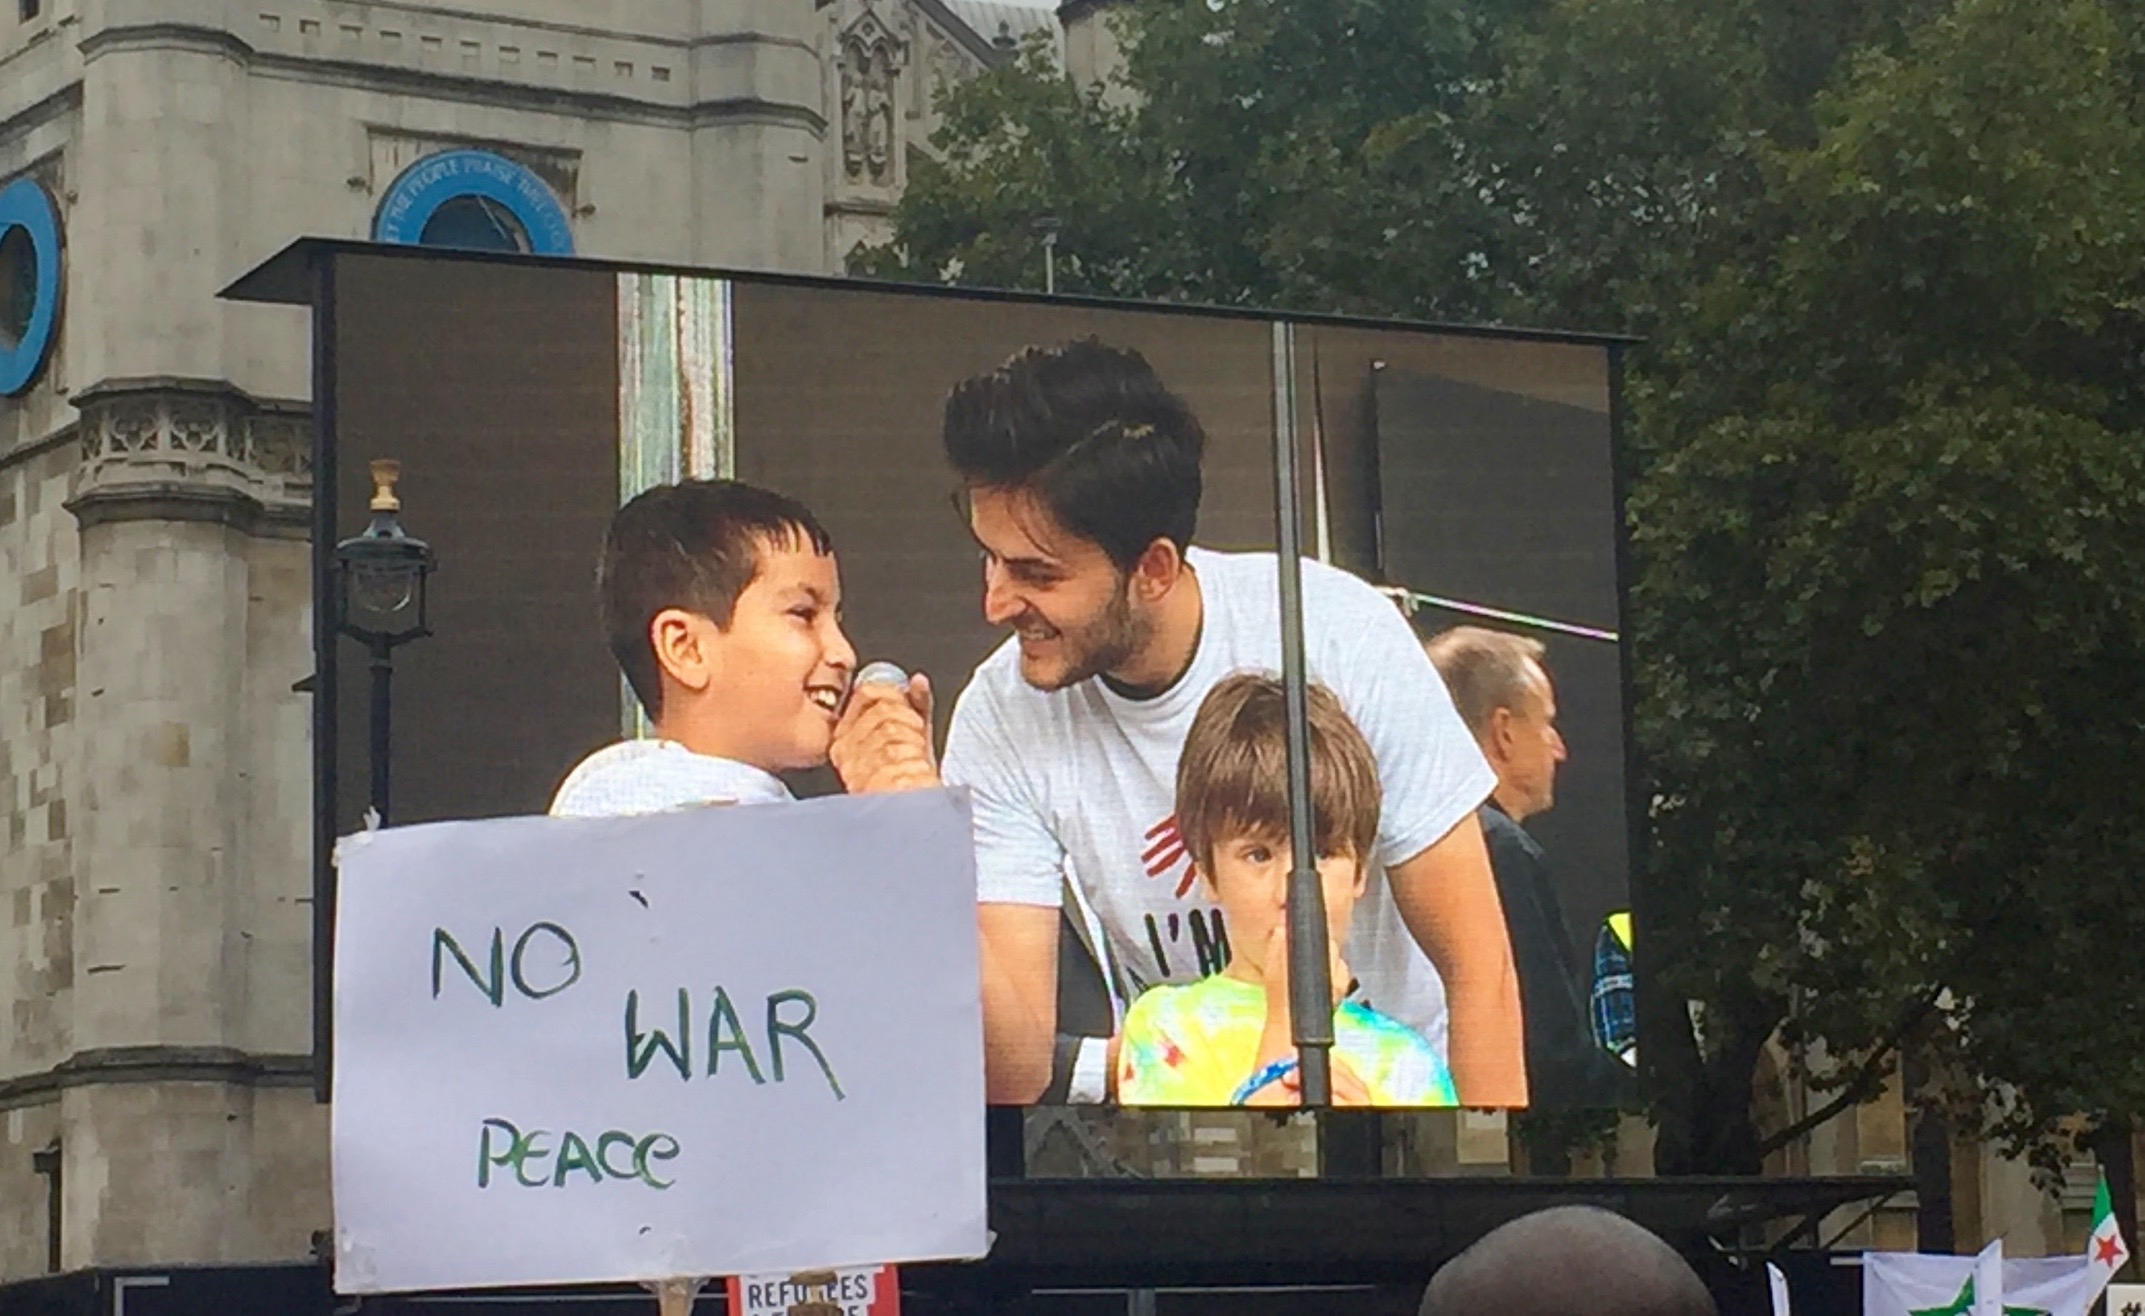 8-year old refugee from Syria says how happy he is to be in the UK and hoped others will be lucky too.